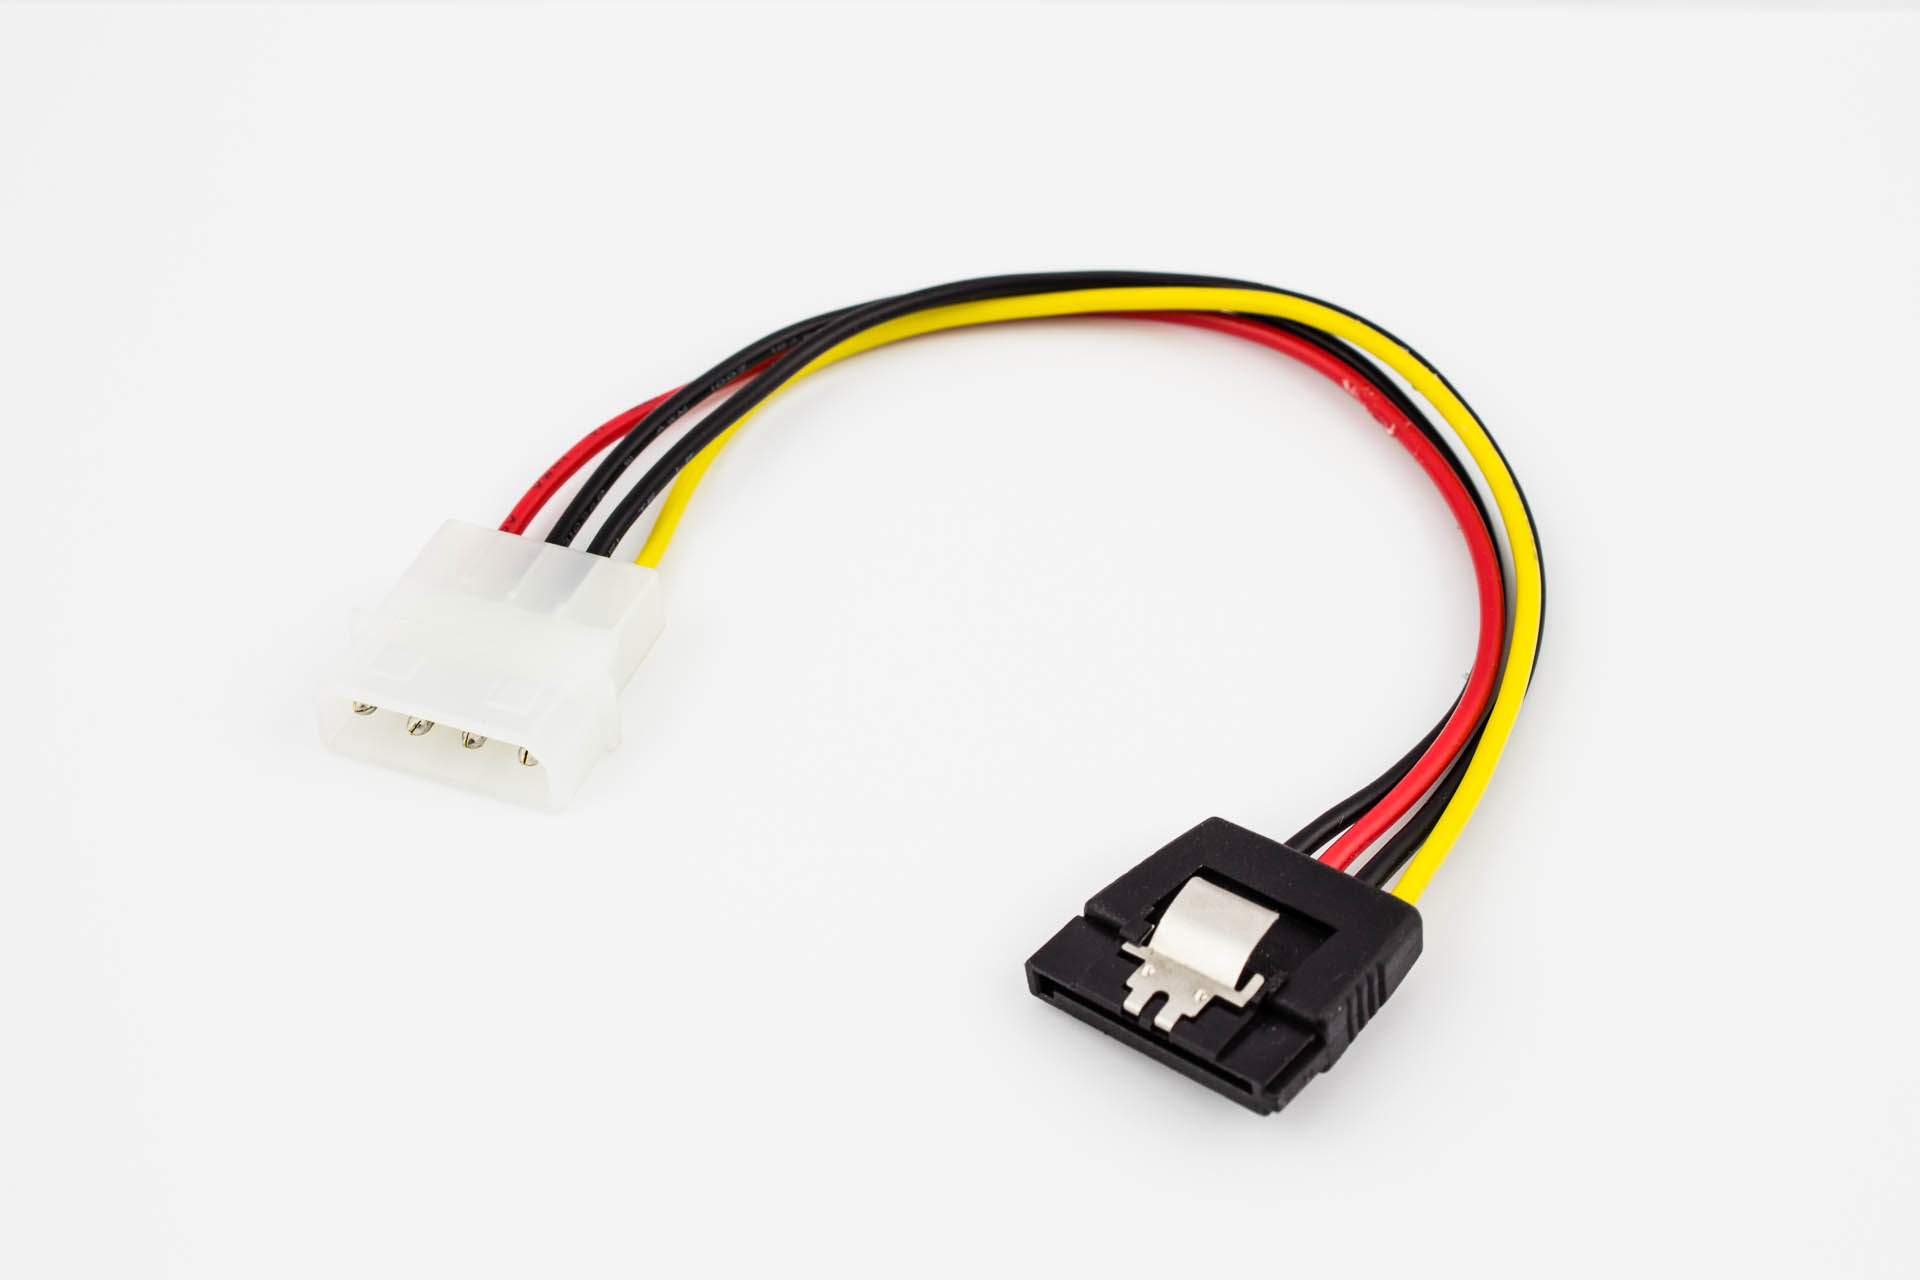 Sata Power Wiring Diagram Jamma Harness Source Adapter Cable 15p With